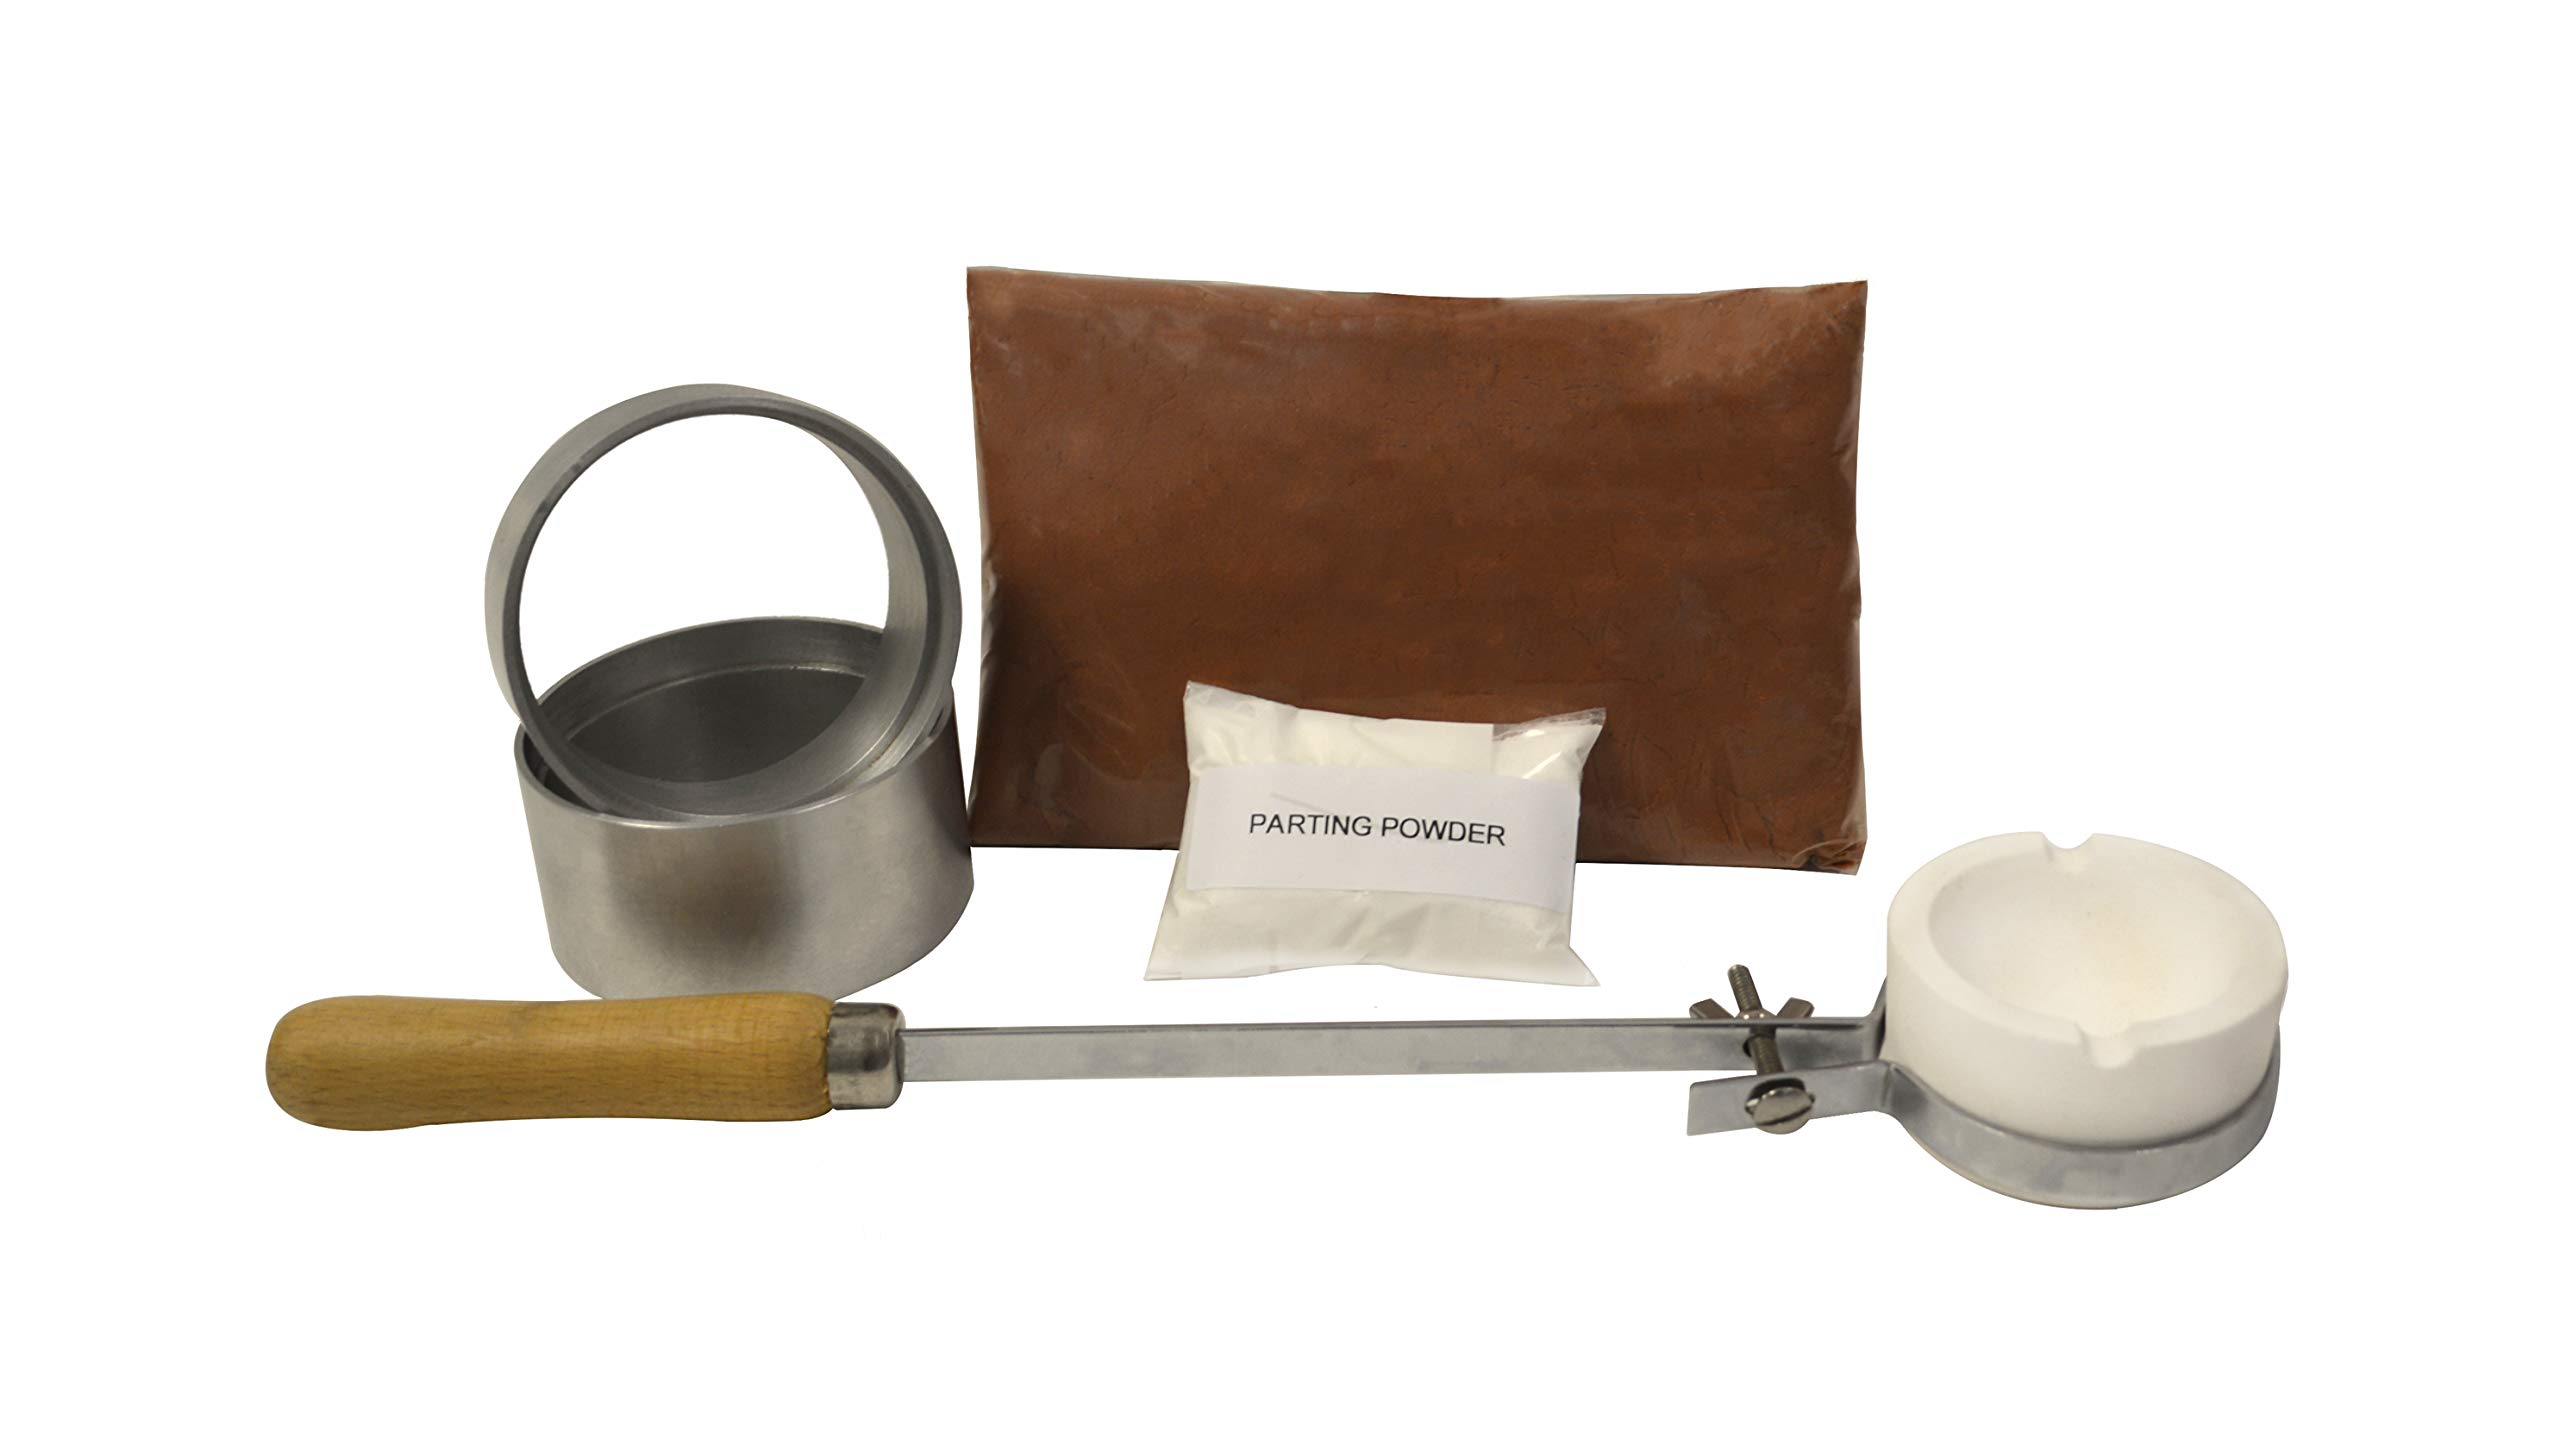 Basic Quick Cast Sand Casting Kit Jewelry Making Precious Metal Casting Gold Silver Pouring Set with Accessories by PMC Supplies LLC (Image #1)